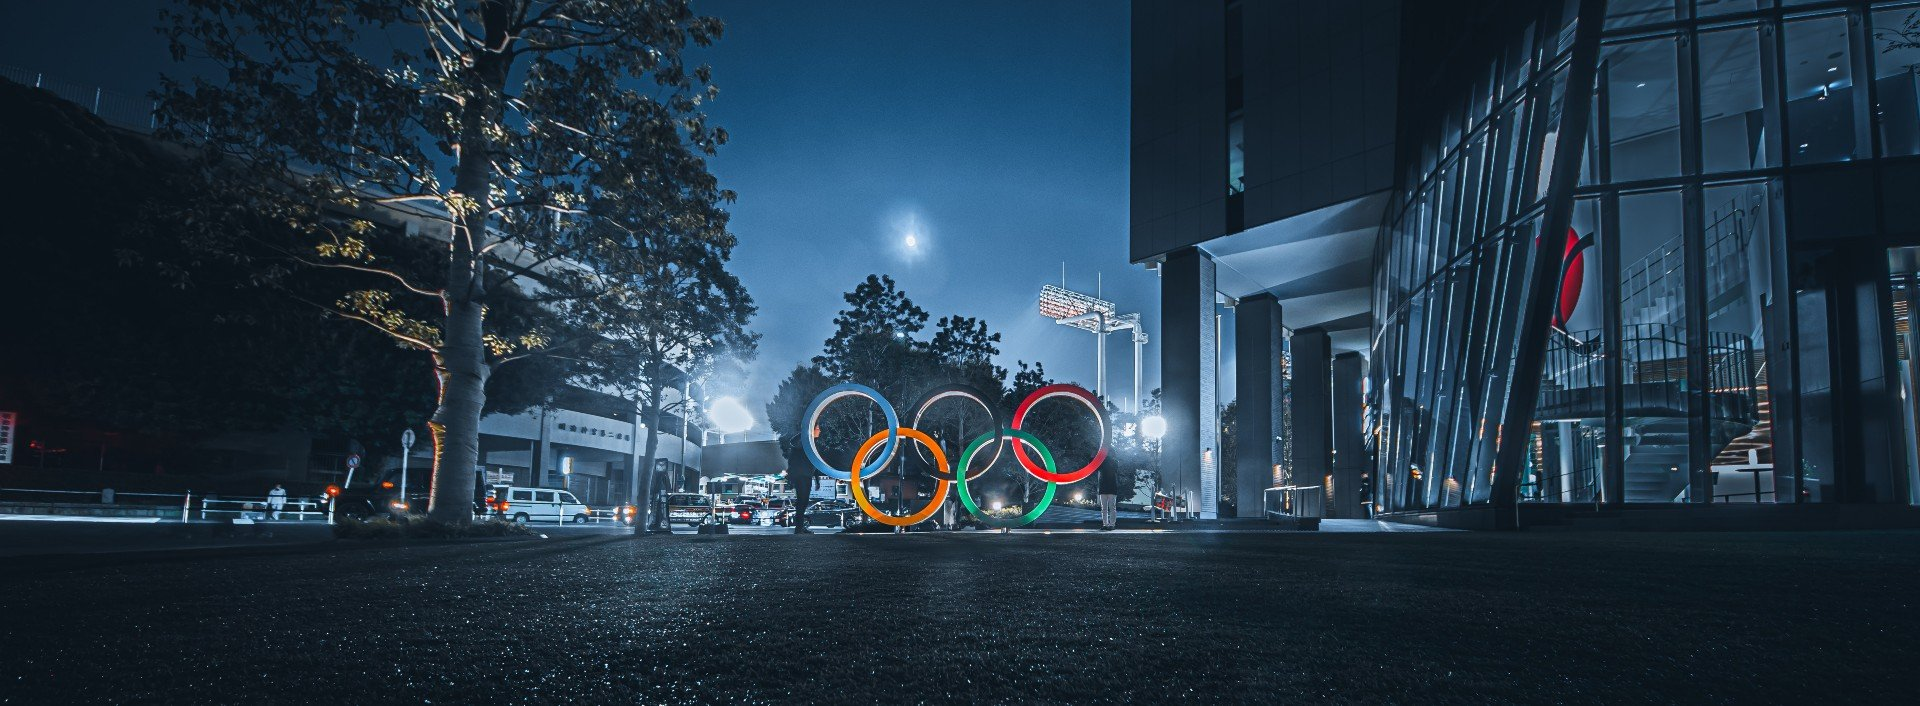 Olympic Vocabulary: the Olympic rings are pictured in a dark street at night.